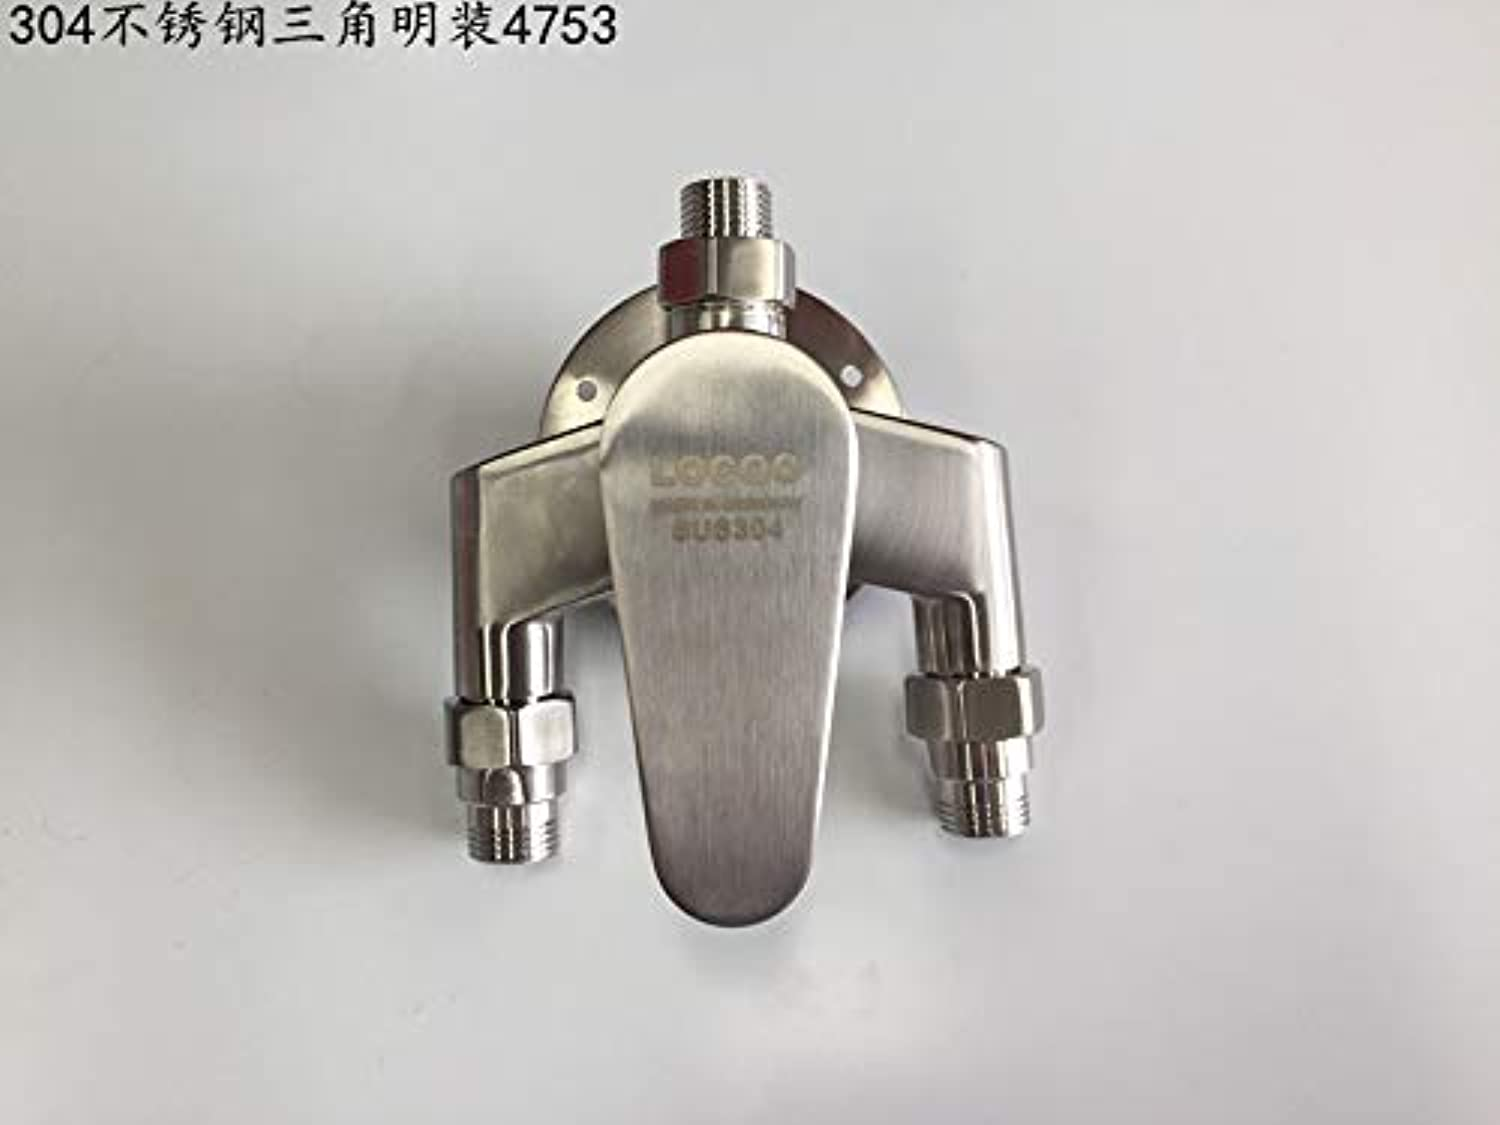 redOOY Mixing valve stainless steel shower faucet 306 wall mounted shower mixing valve hot and cold solar water heater faucet shower B